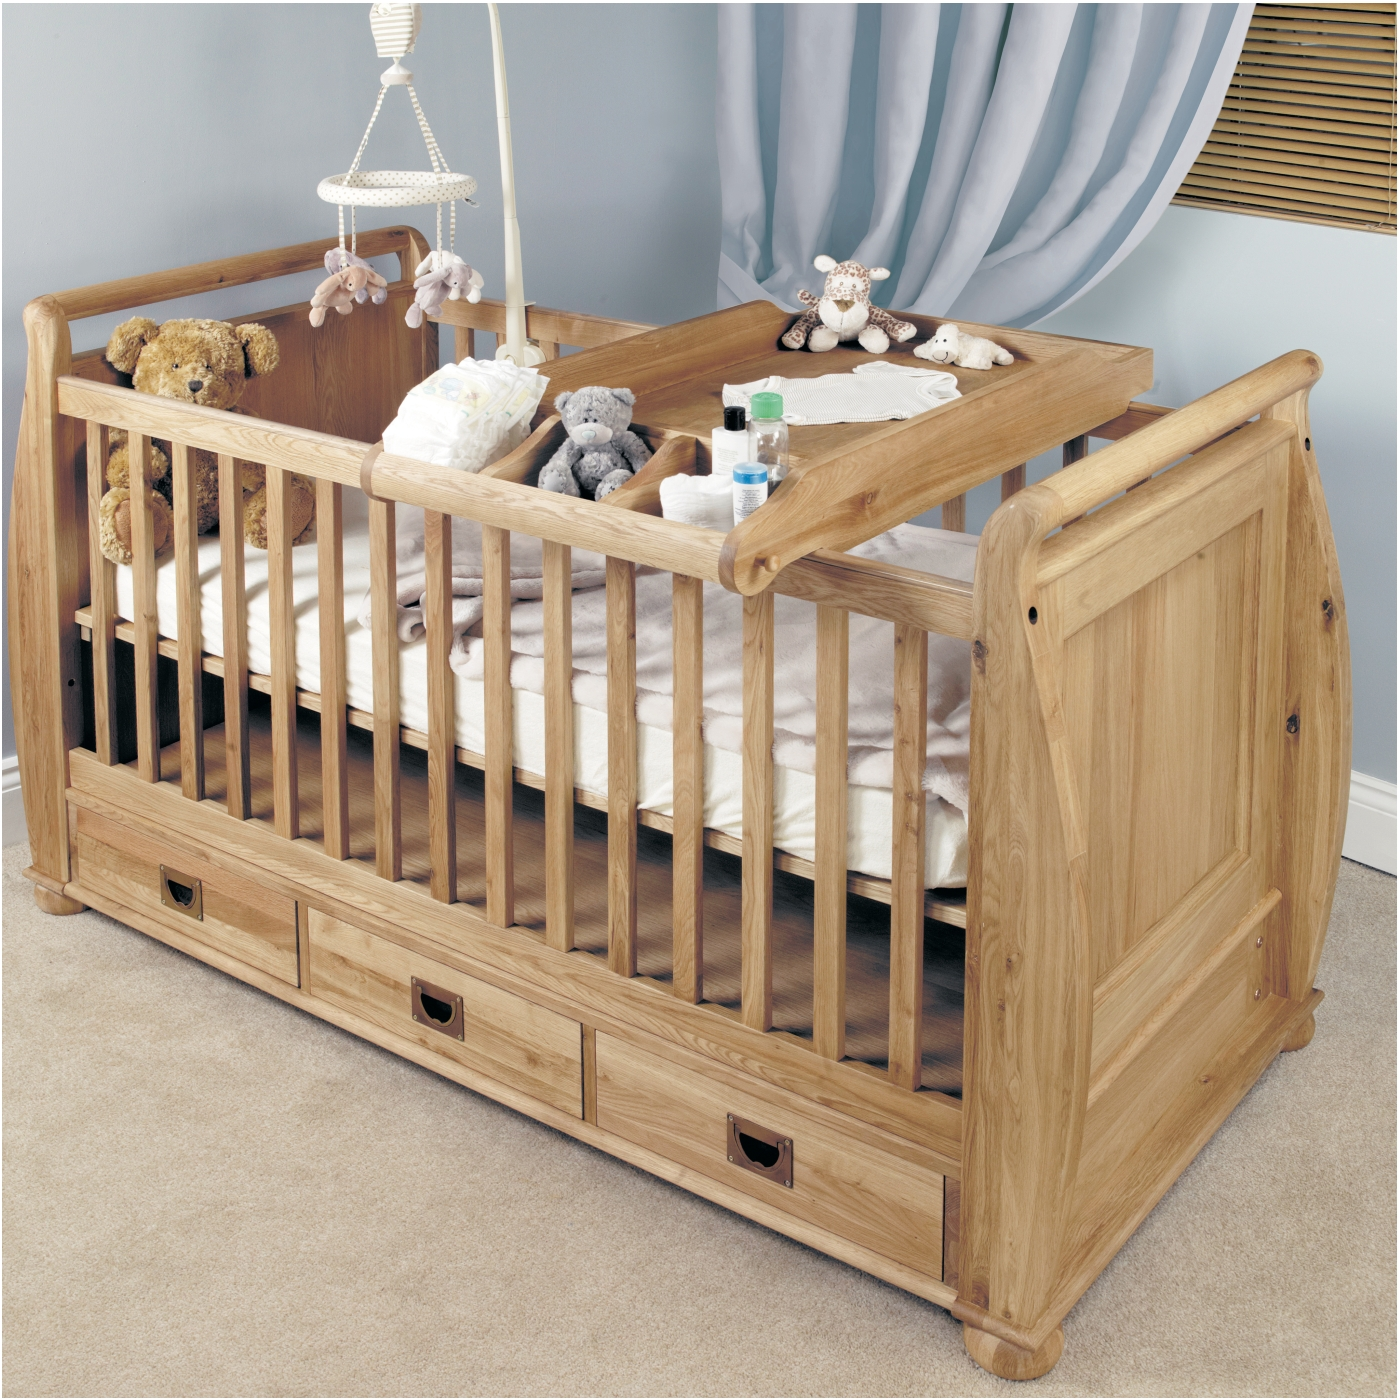 Jayden childrens bedroom furniture oak baby cot bed and changer Wooden childrens furniture